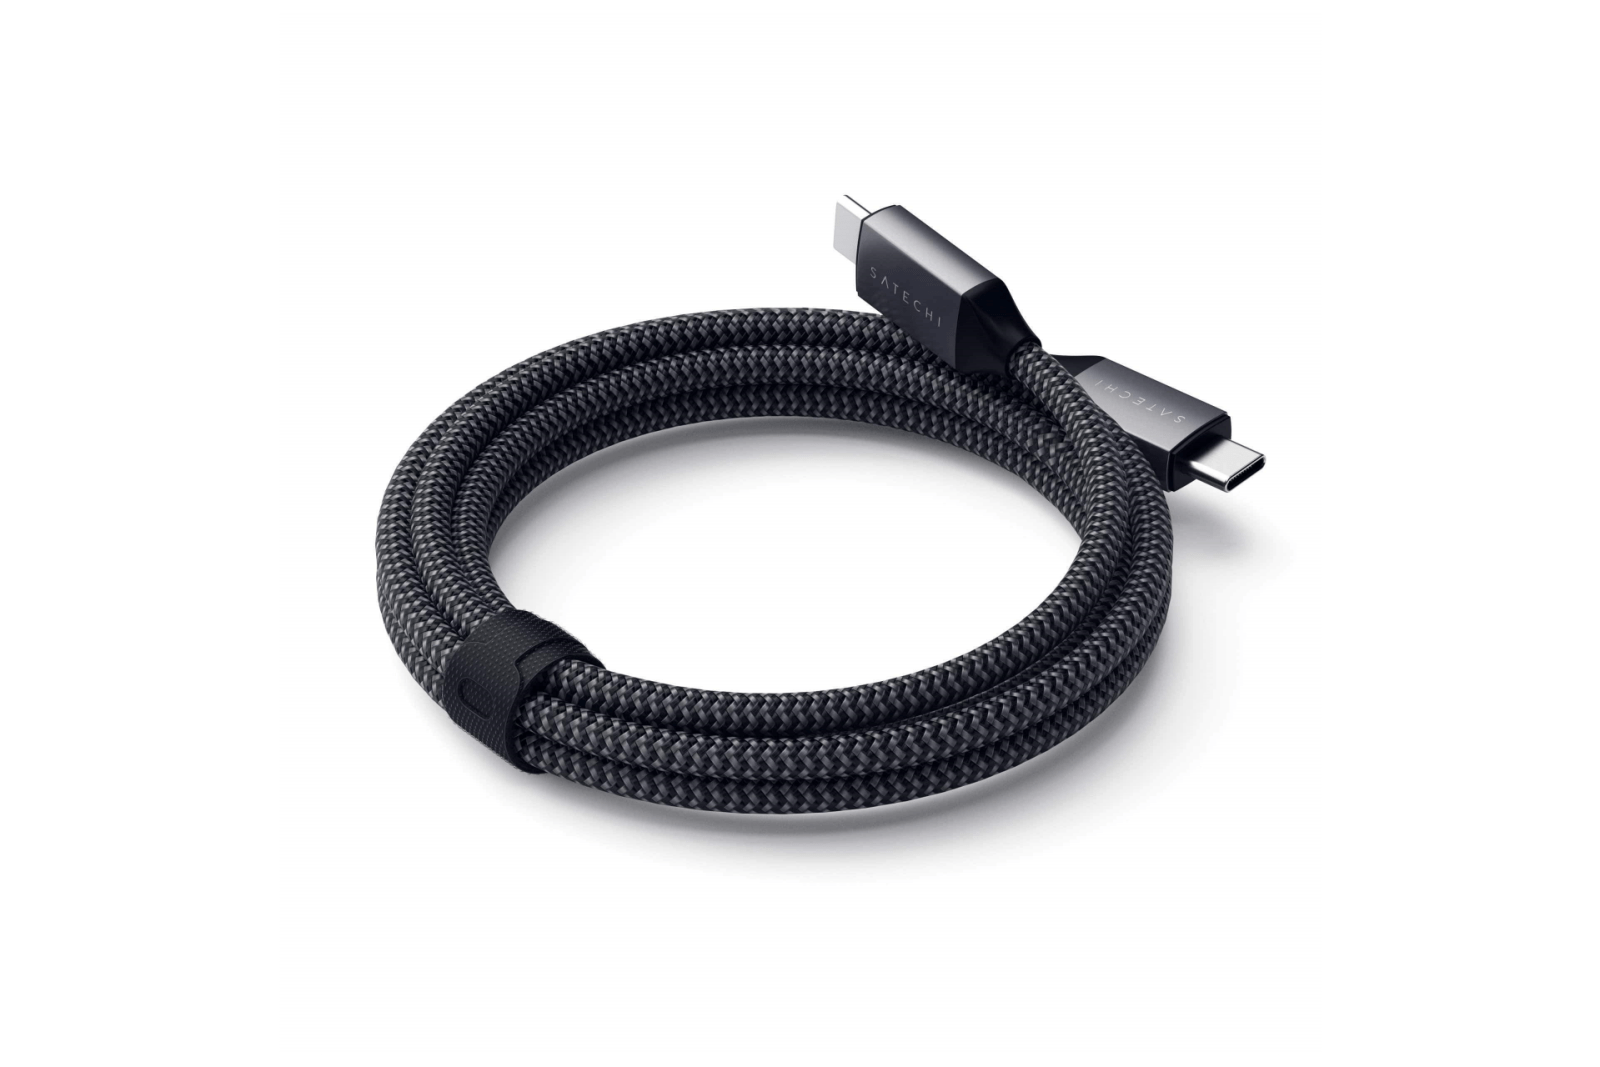 Best USB Type-C Cables You Can Purchase in India